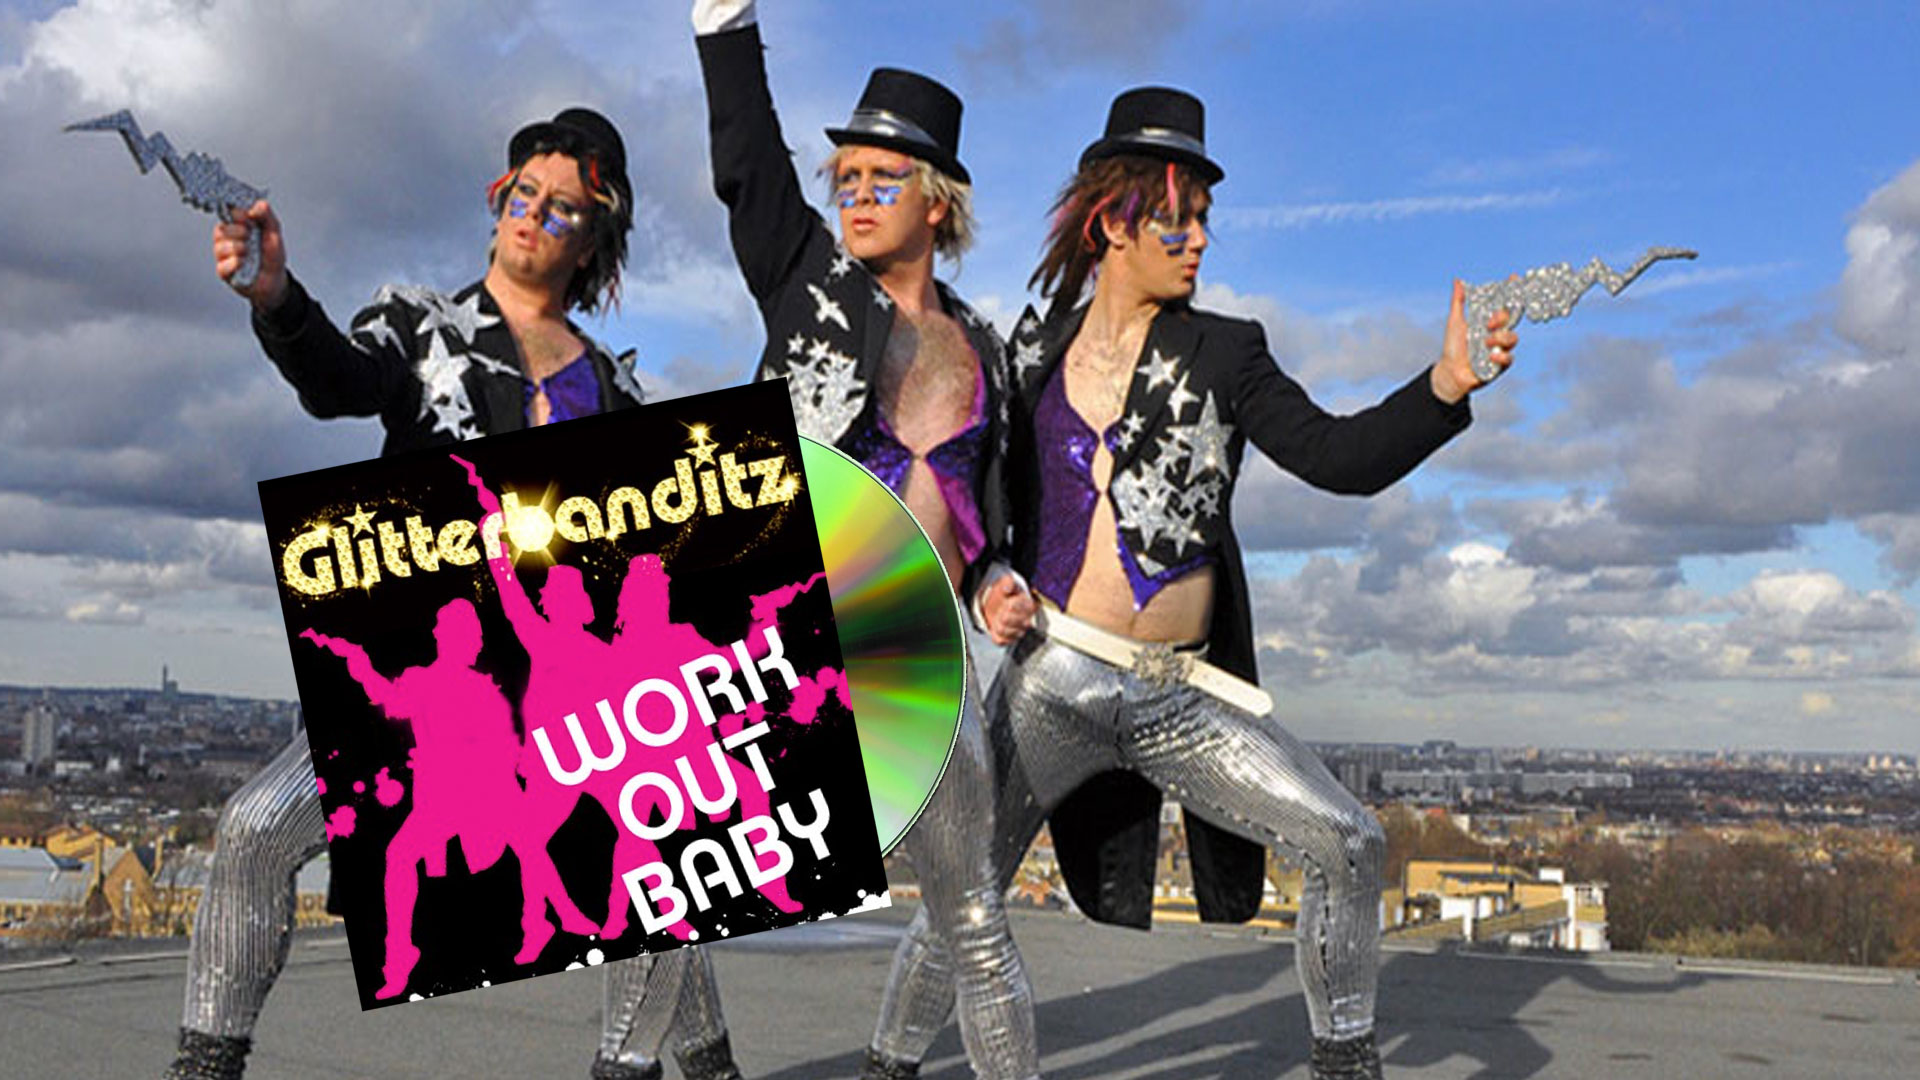 Glitterbanditz Work Out Baby packshot